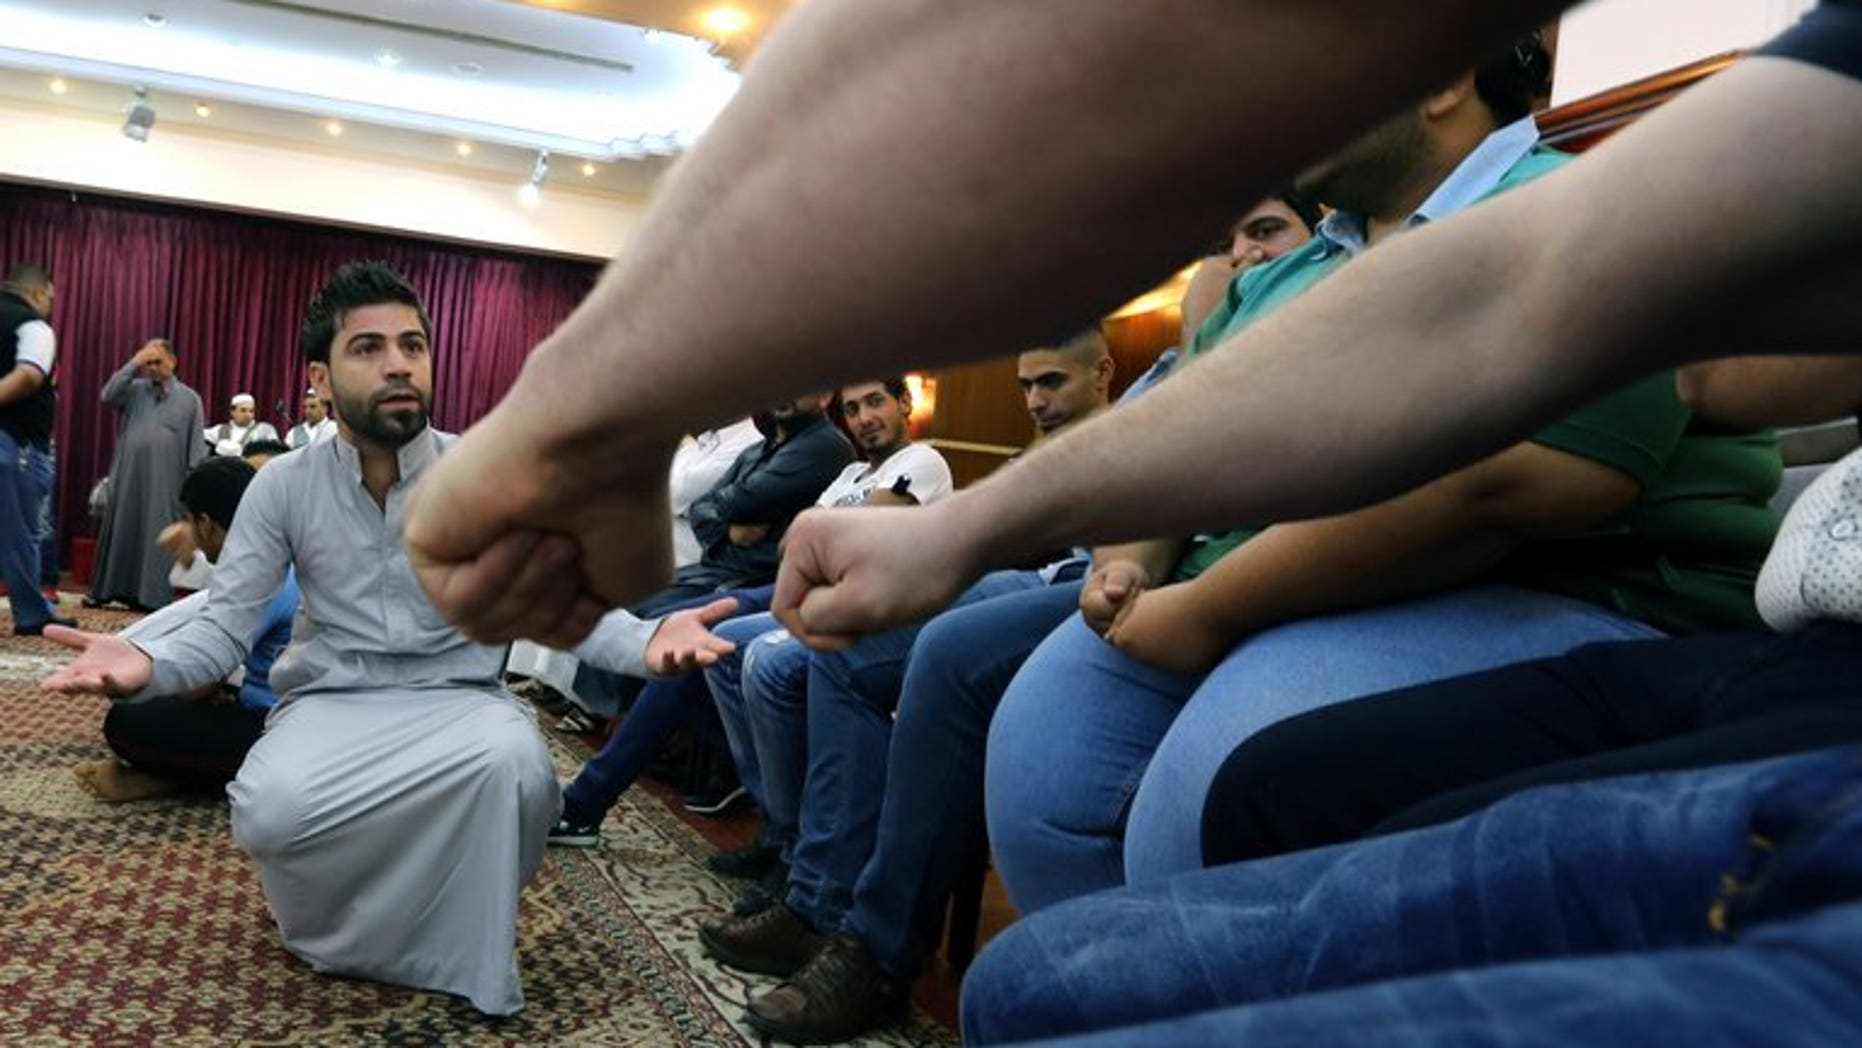 """An Iraqi man takes part in a game of """"Mheibis"""" -- where someone has to guess who is holding a ring in the clenched fist -- in Baghdad, on August 6, 2013. The game of """"Mheibis"""" is wildly popular in Iraq during the holy Muslim fasting month of Ramadan."""